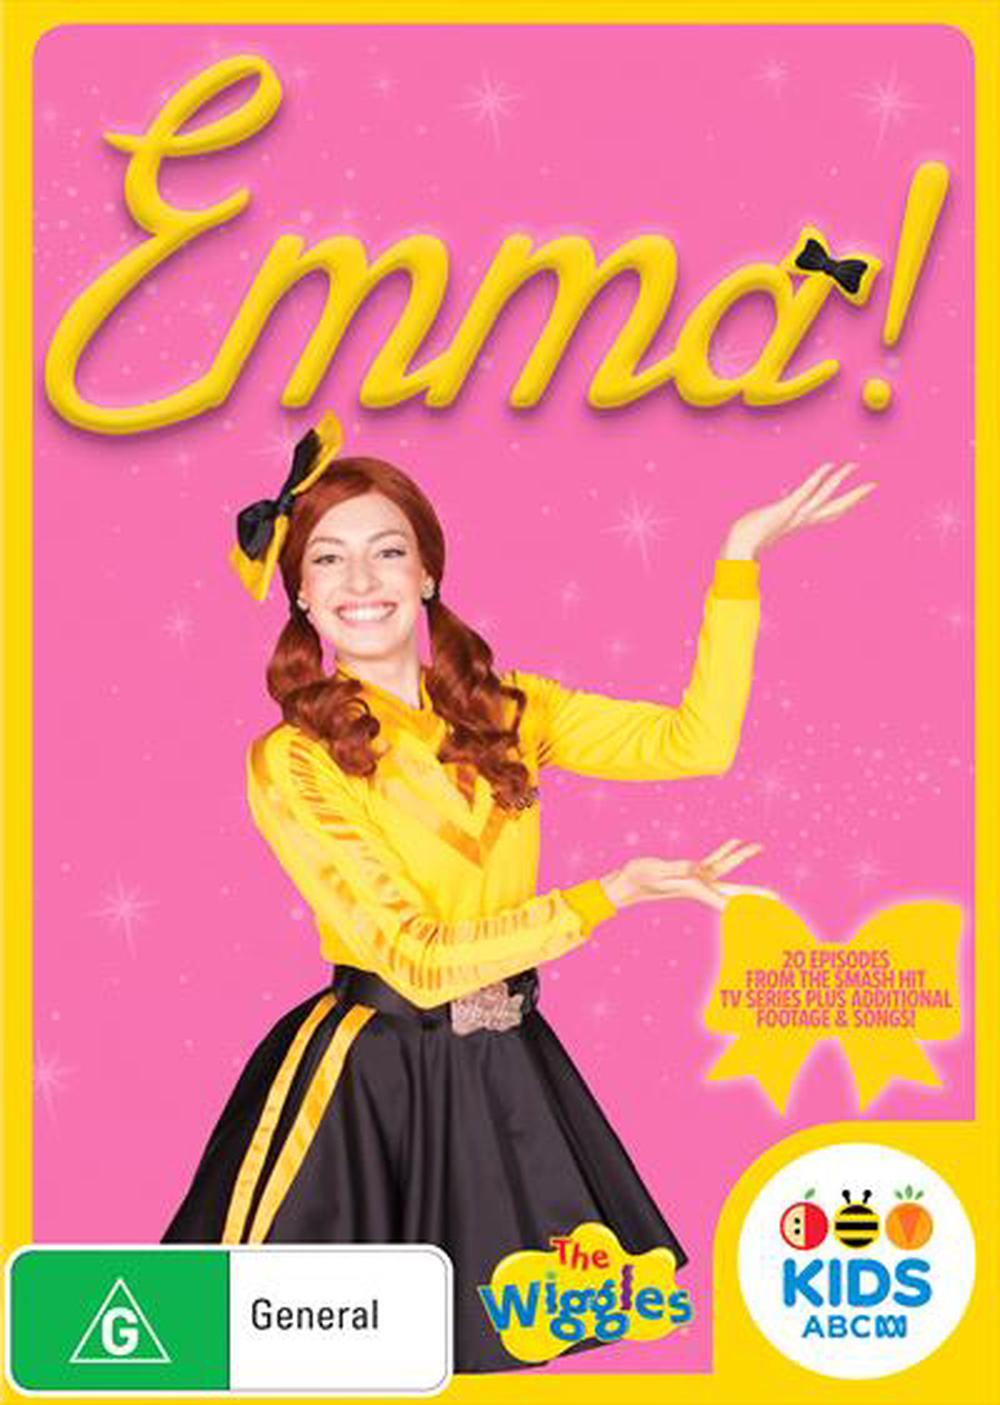 The Wiggles - Emma!